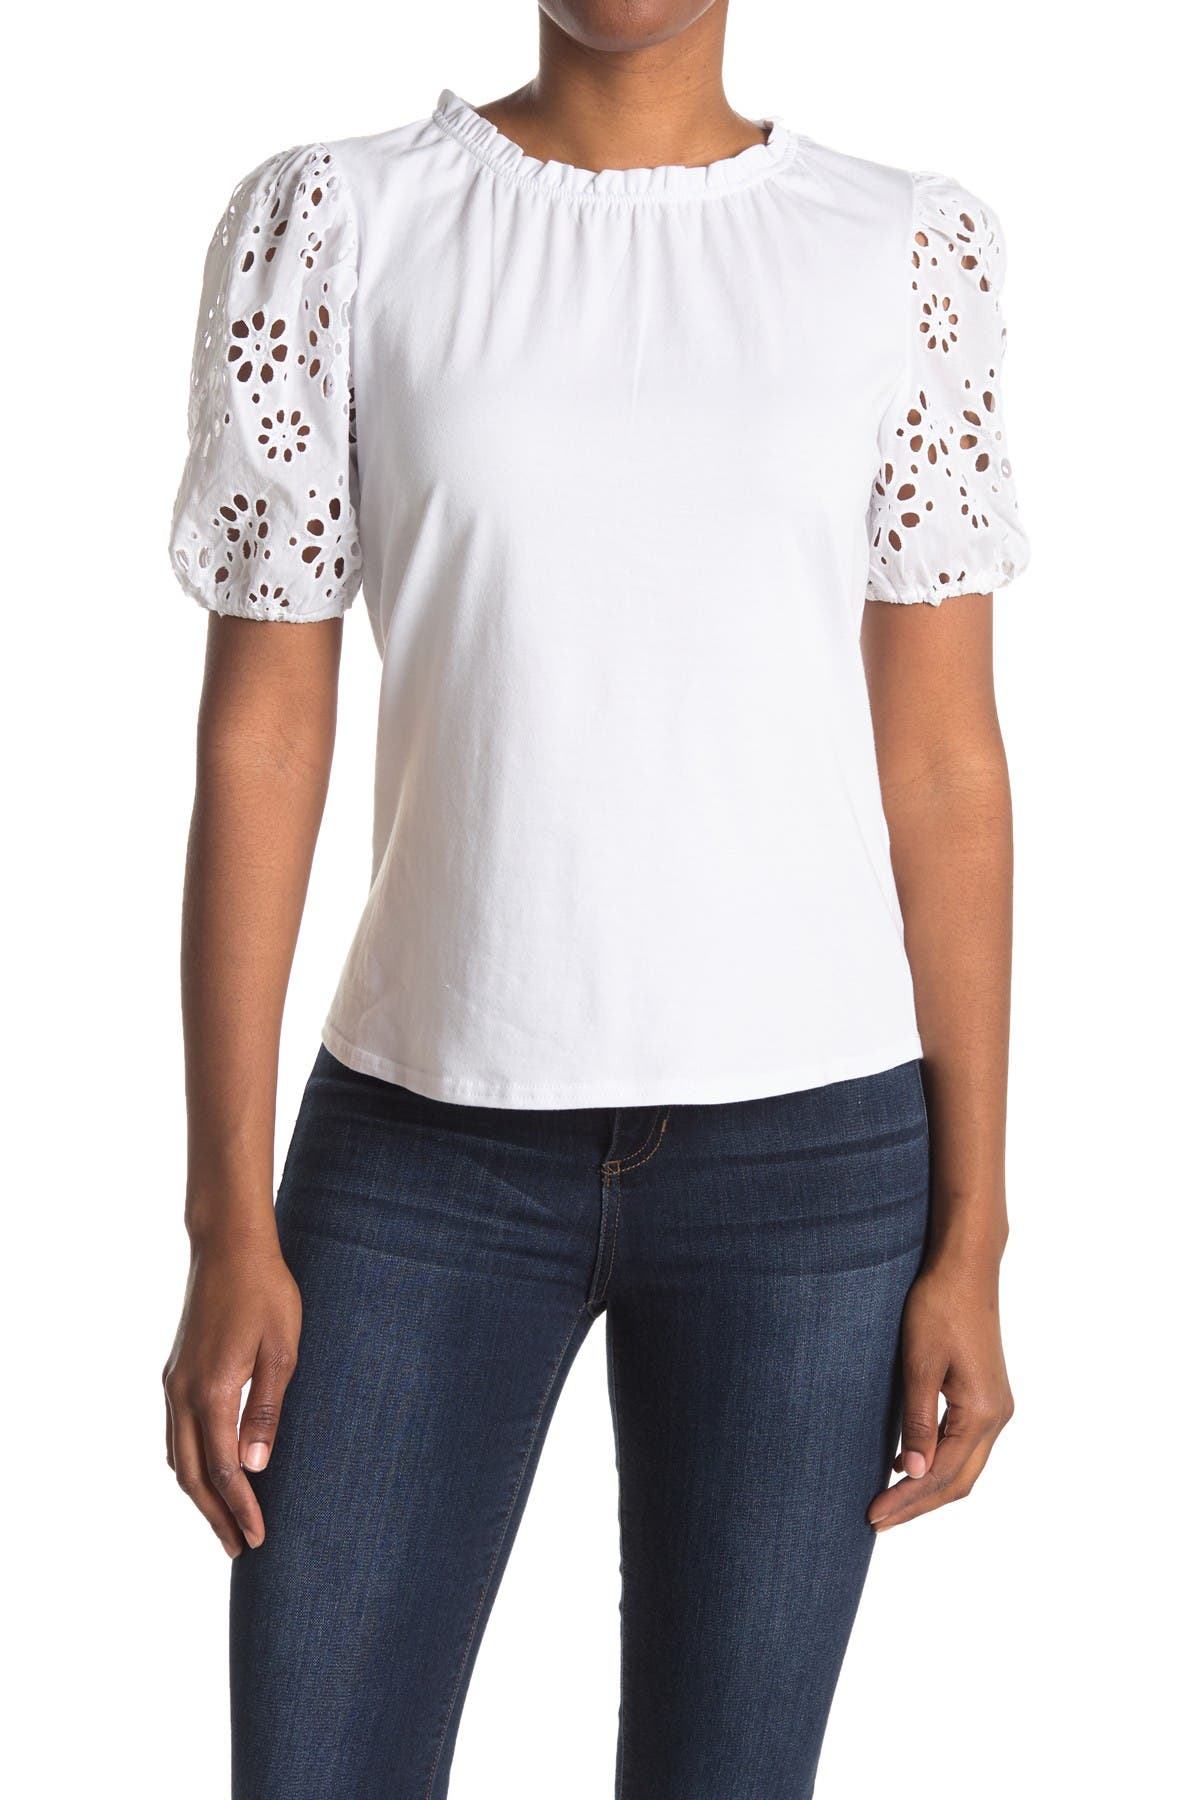 Image of Laundry By Shelli Segal Eyelet Balloon Sleeve Knit Top